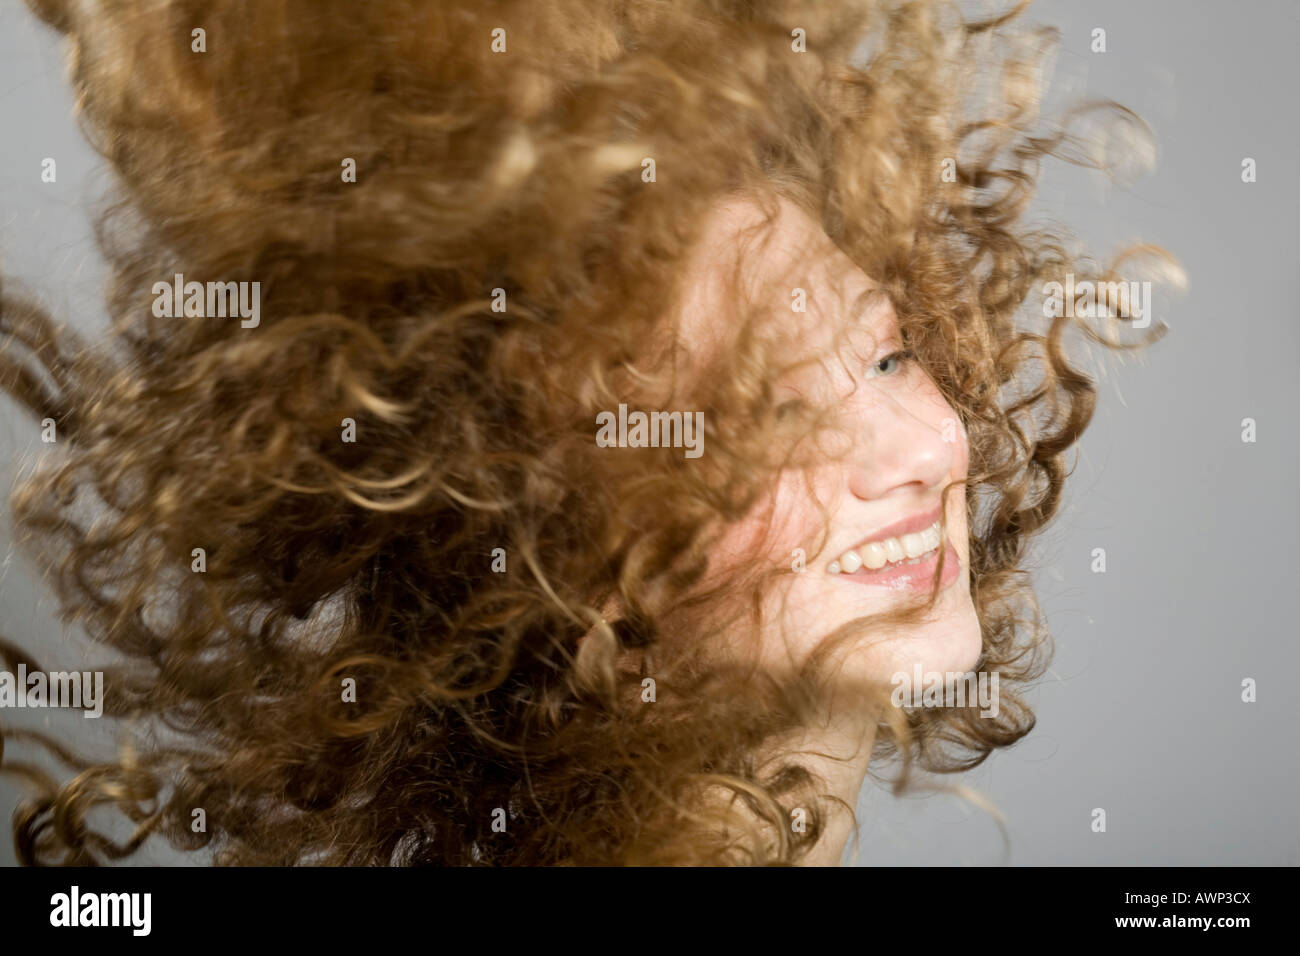 Young woman, her long curly hair flying through the air - Stock Image